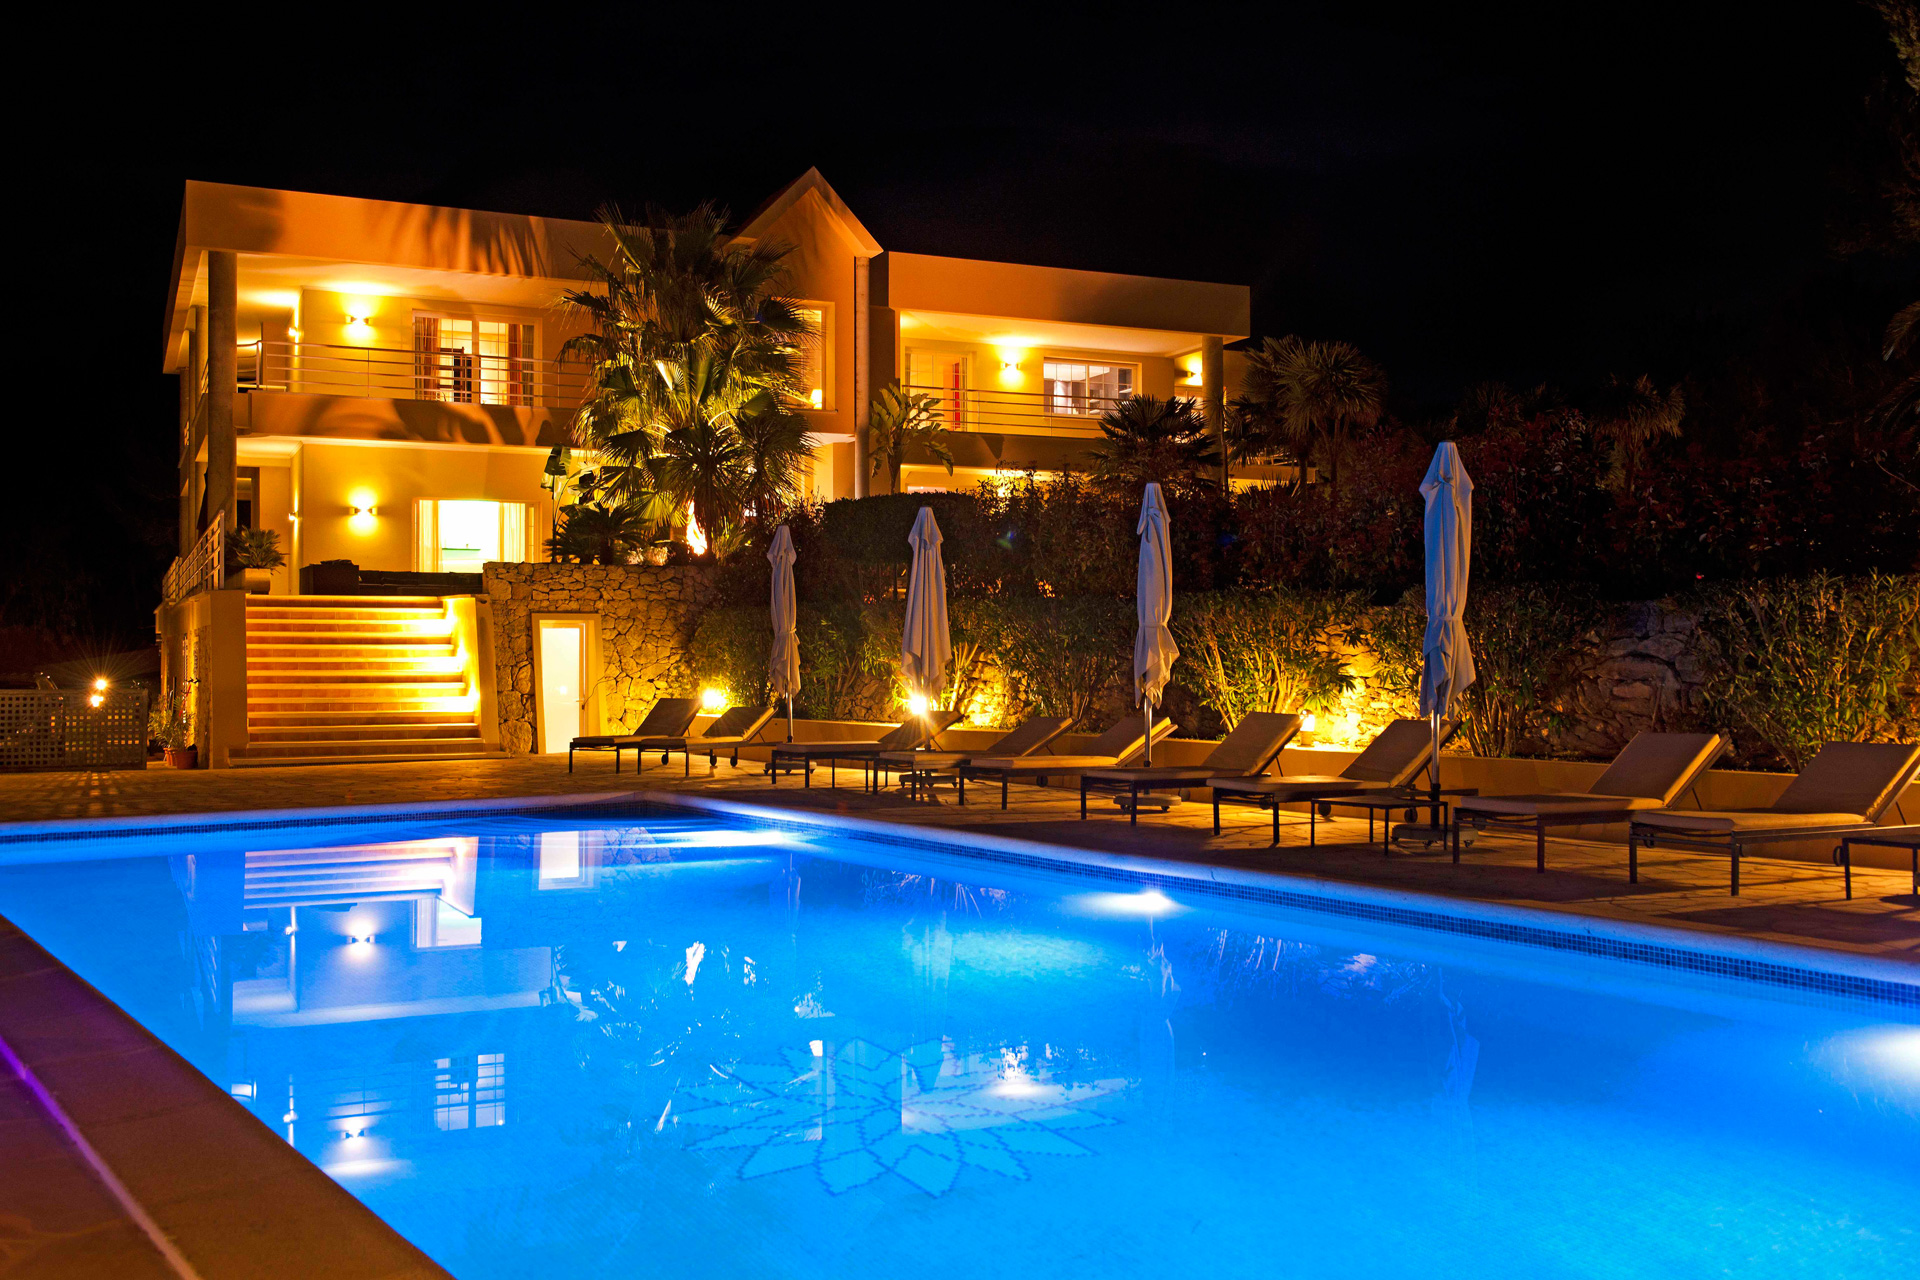 San Rafael Ibiza villa at night to rent